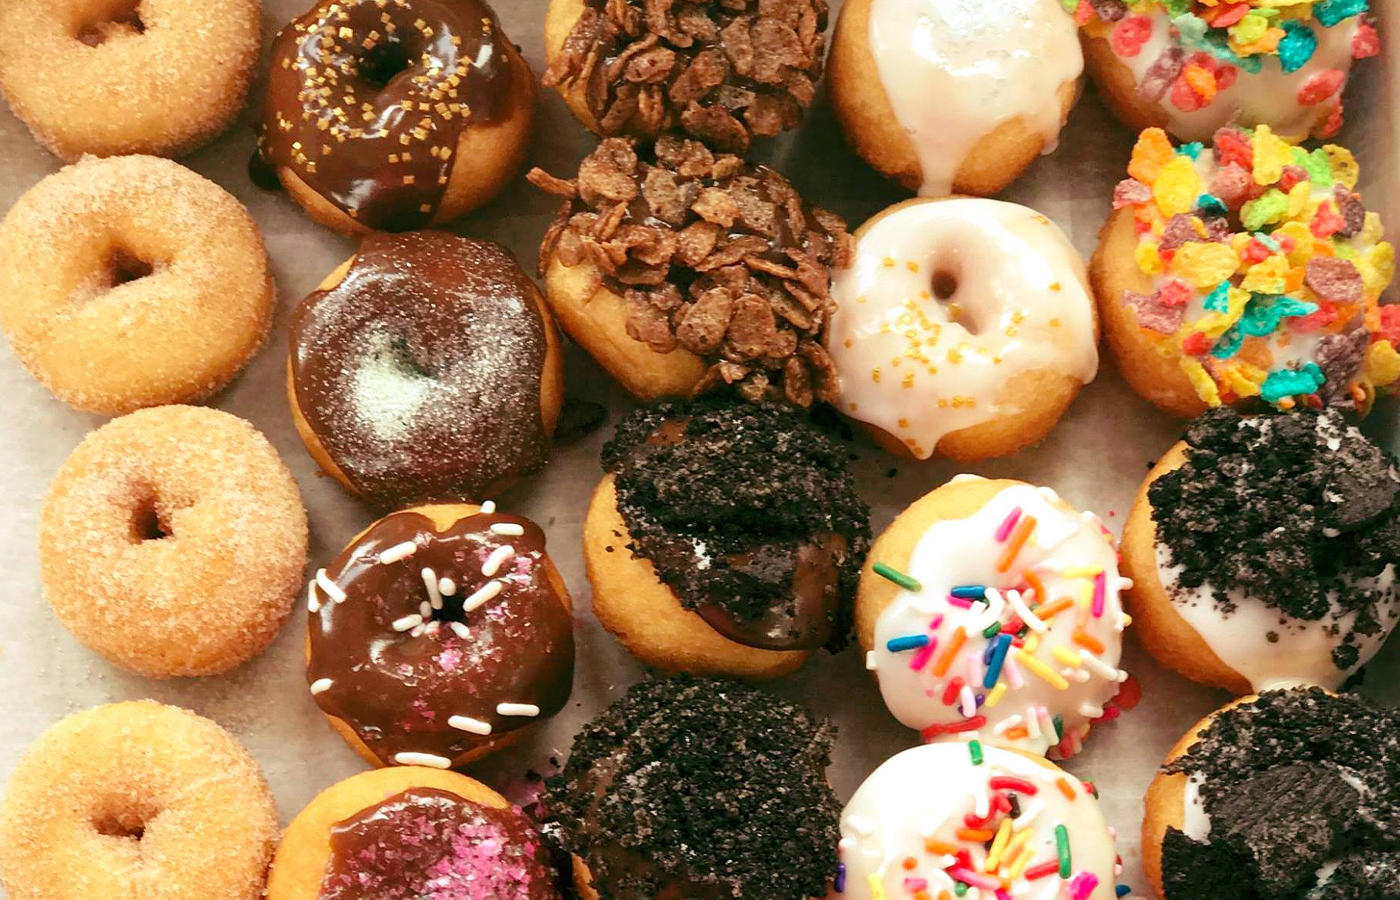 Donut Distillery Serves Up the Sweets!